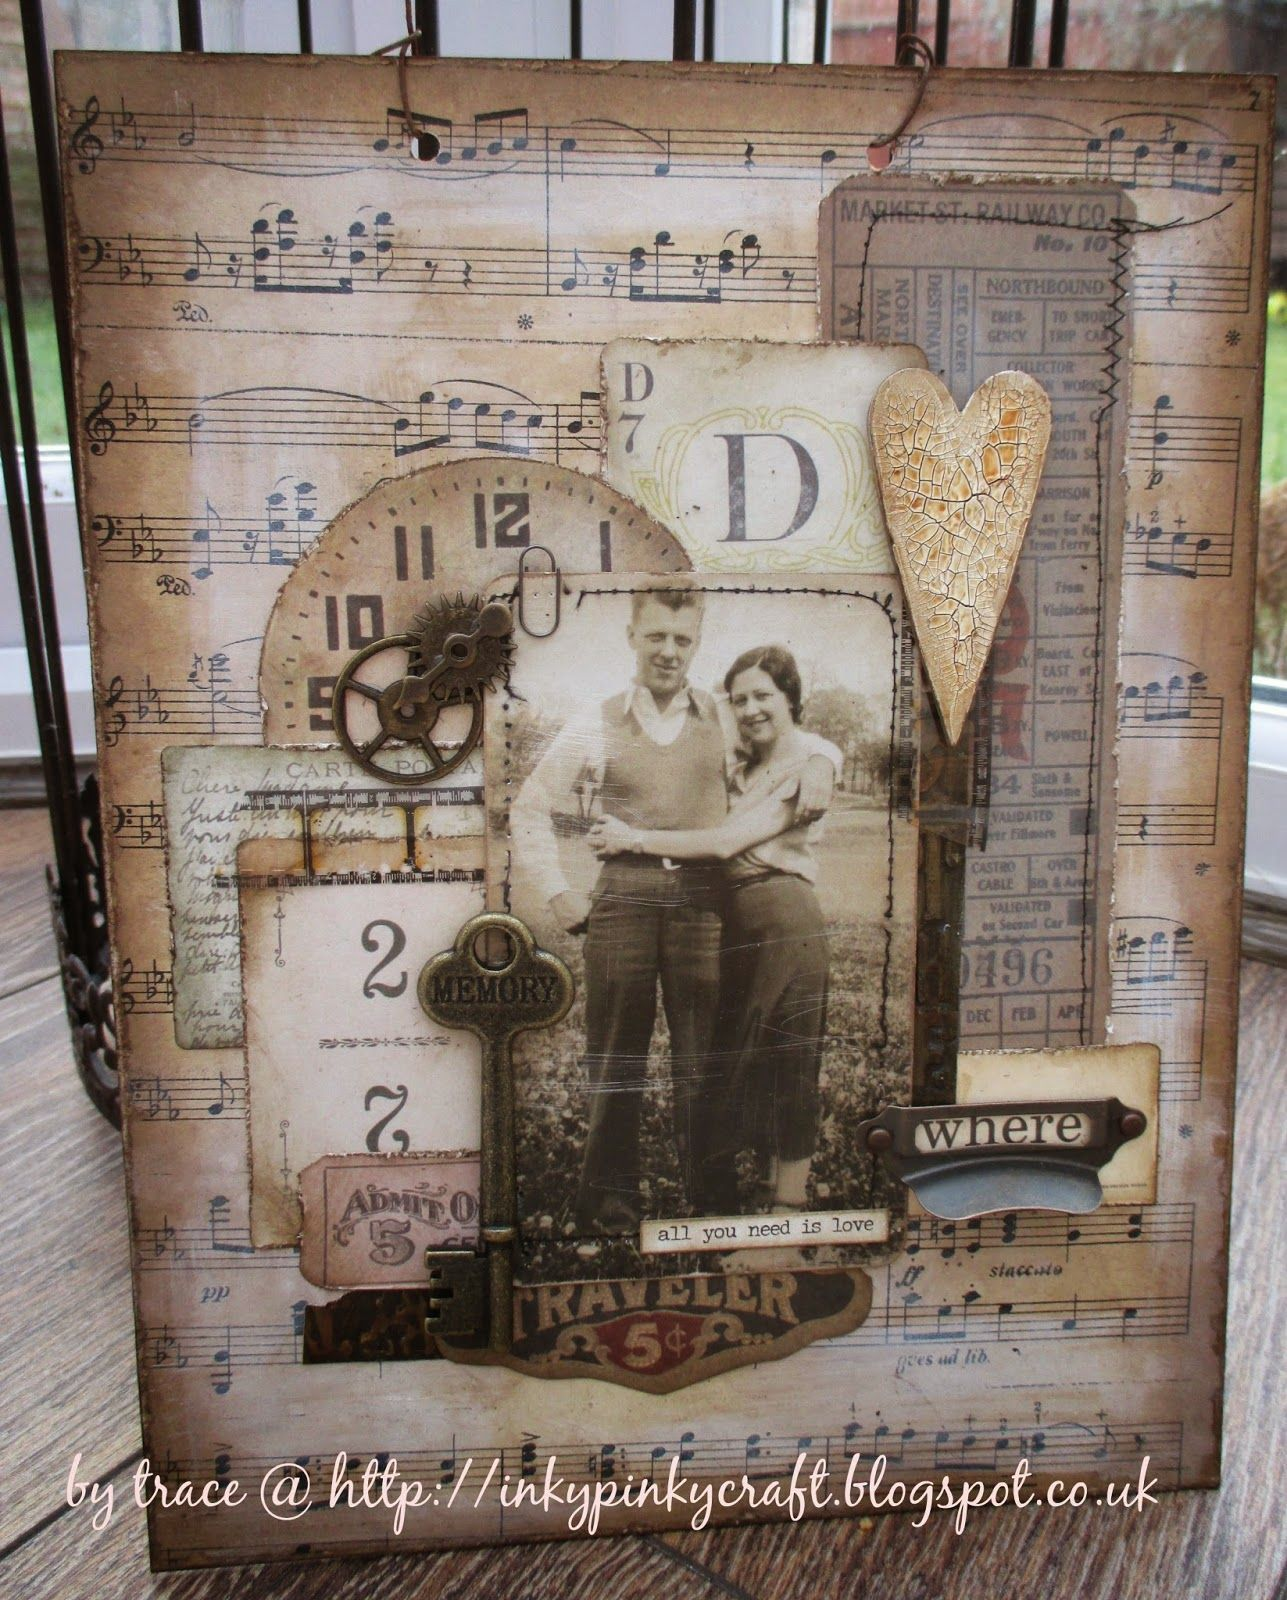 All you need is love for A Vintage Journey inkypinkycraft